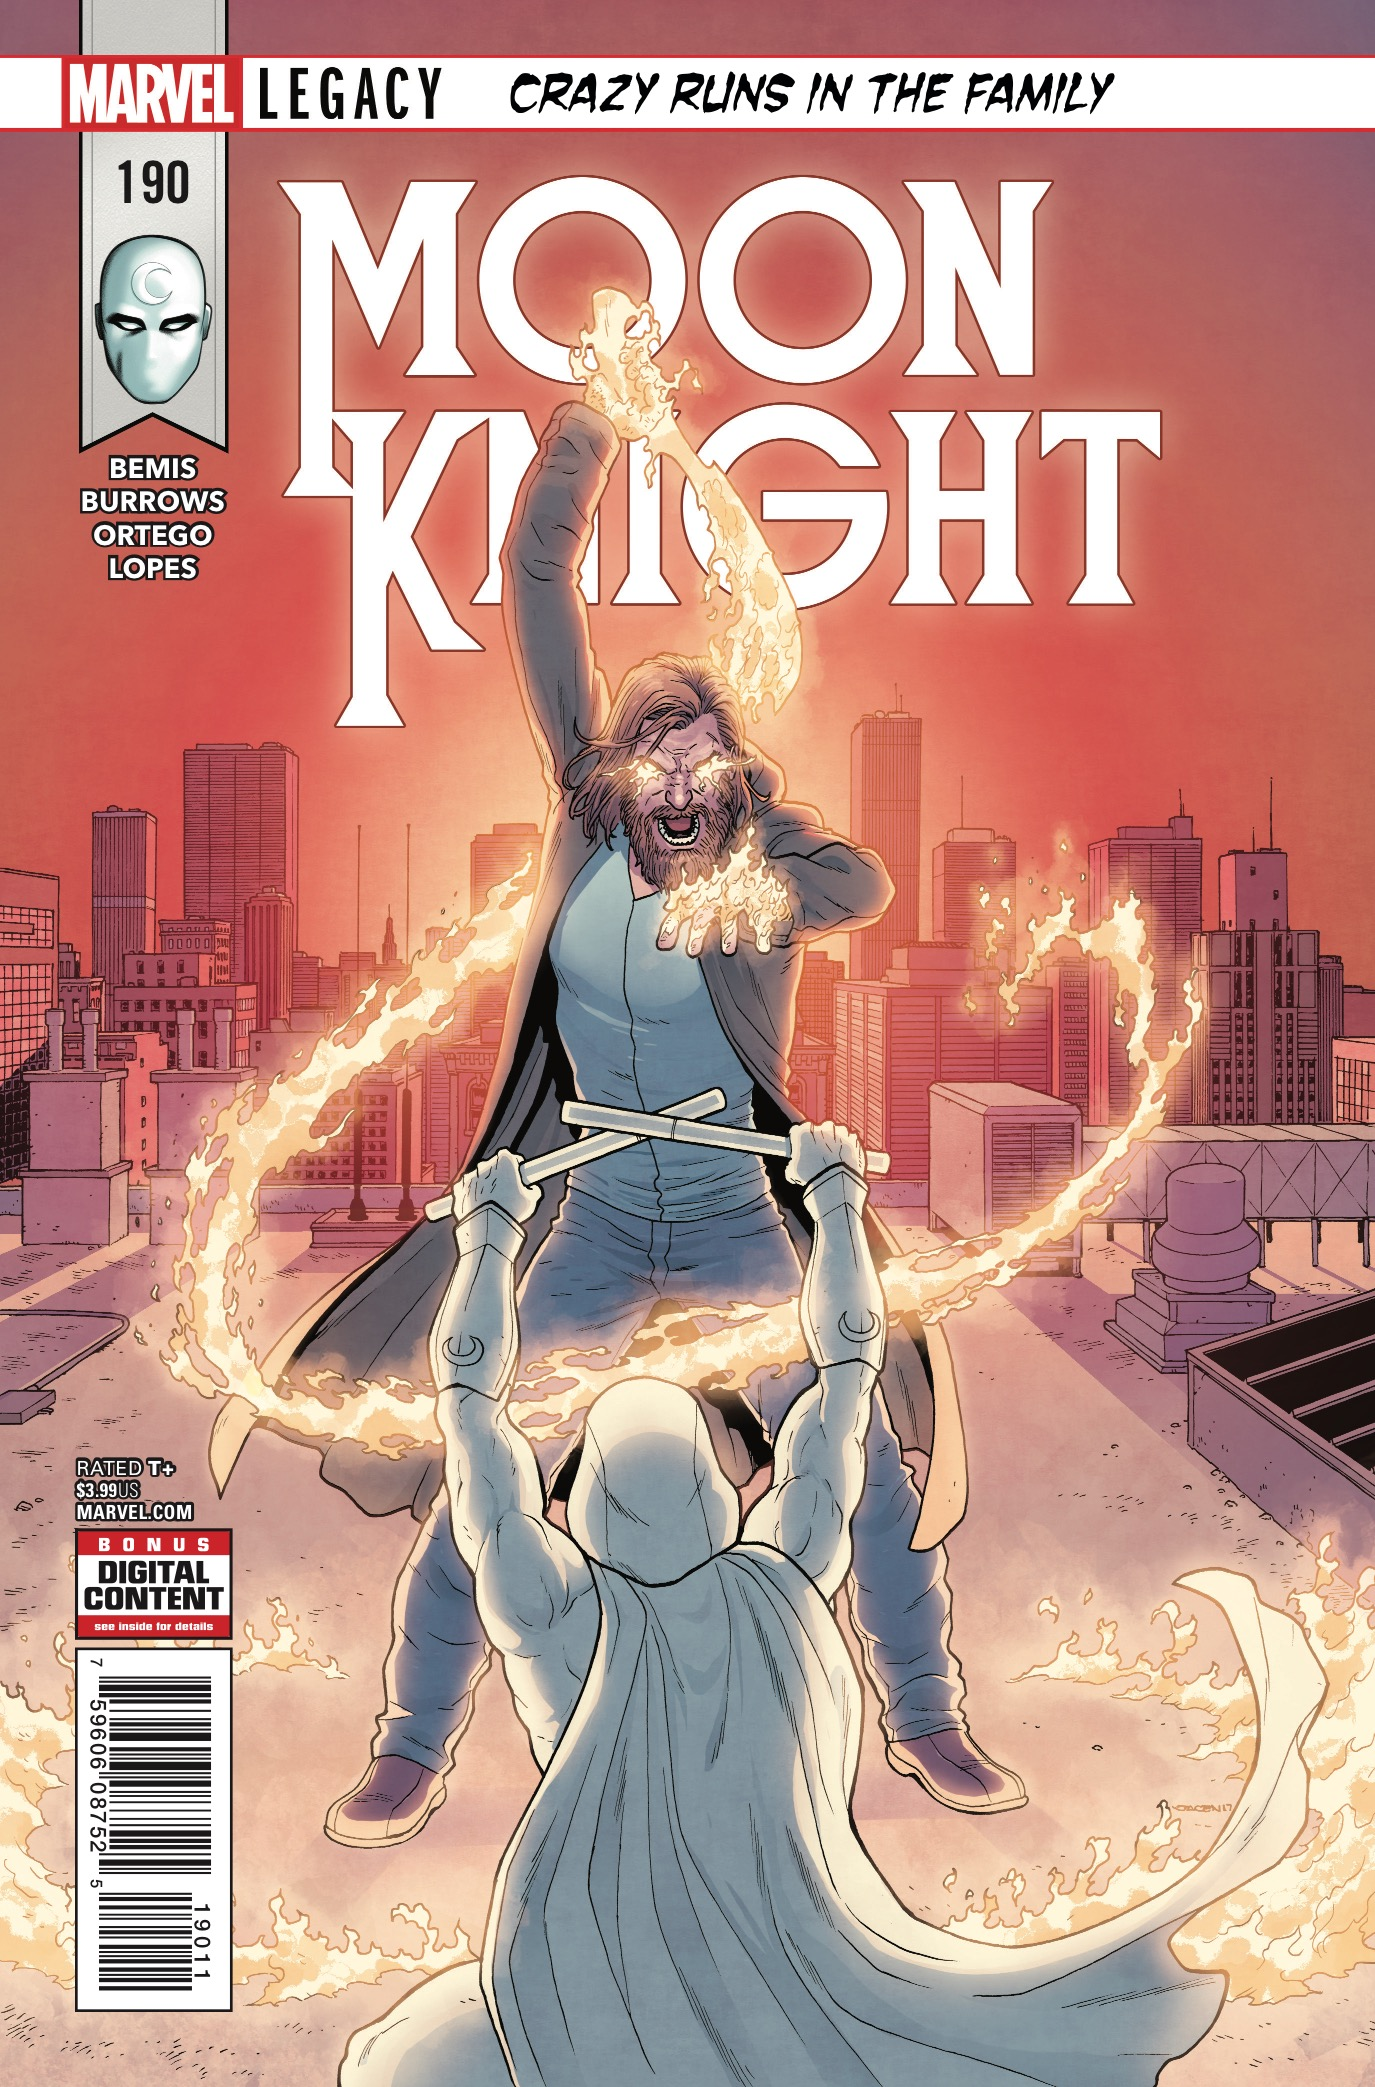 Marvel Preview: Moon Knight #190